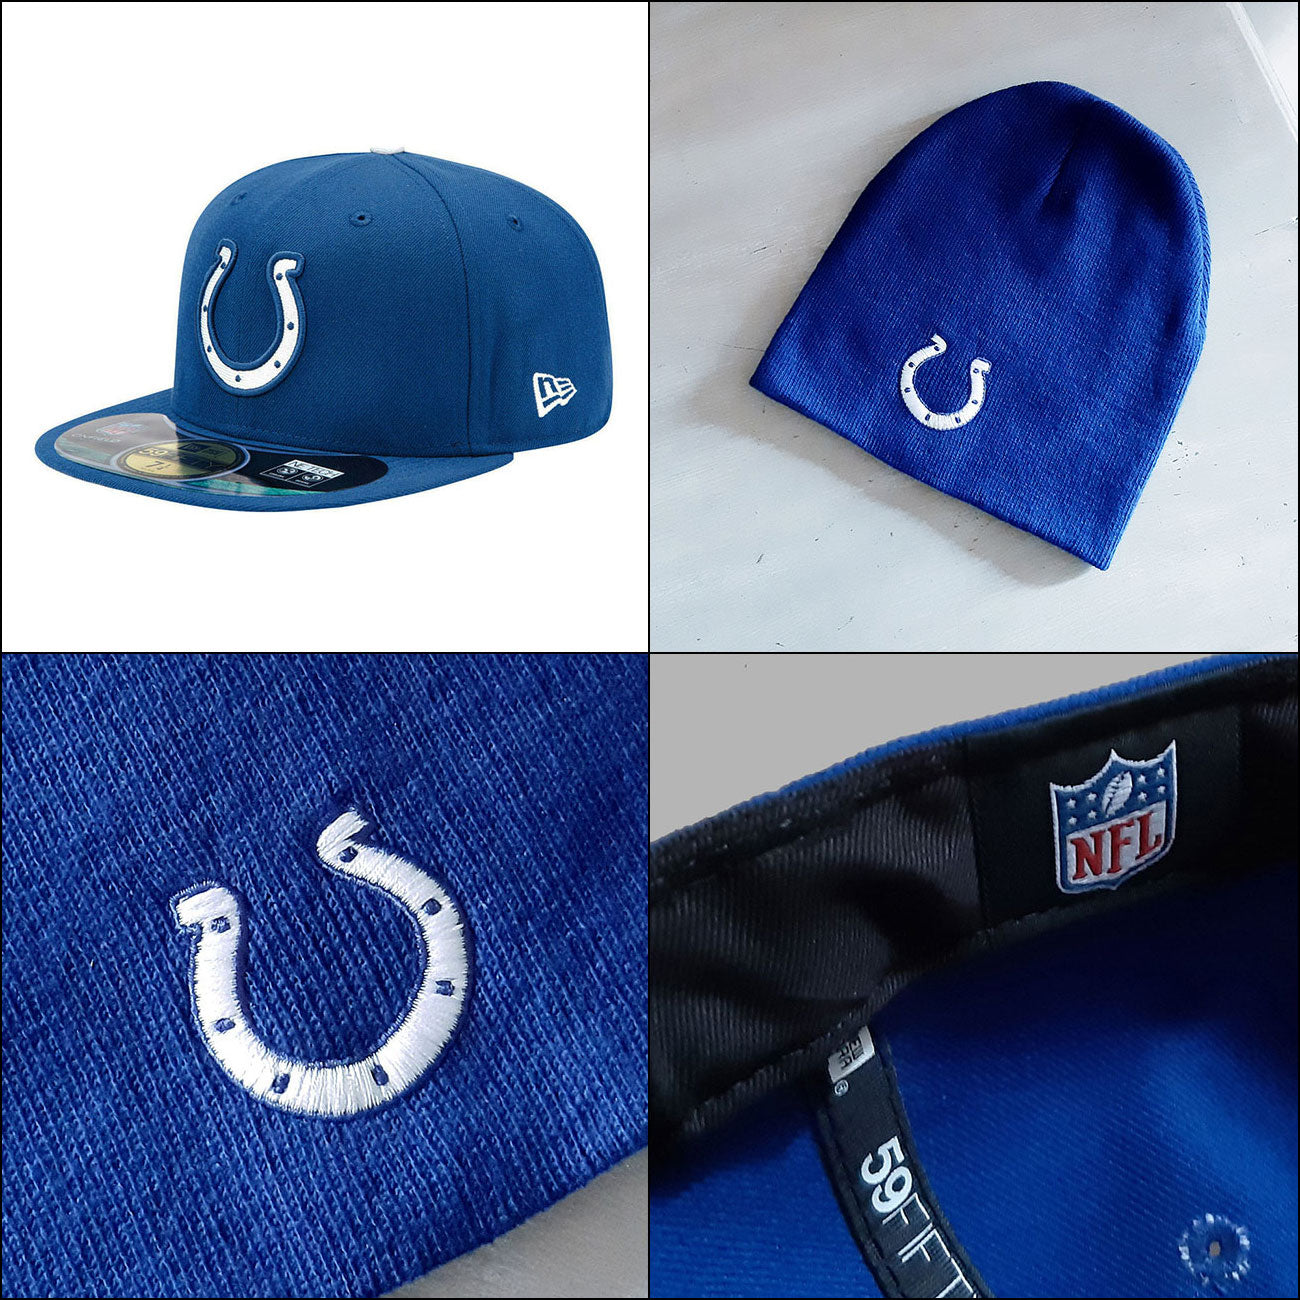 Indianapolis Colts NFL 59FIFTY OnField Fitted Baseball Cap PLUS Colts Beanie